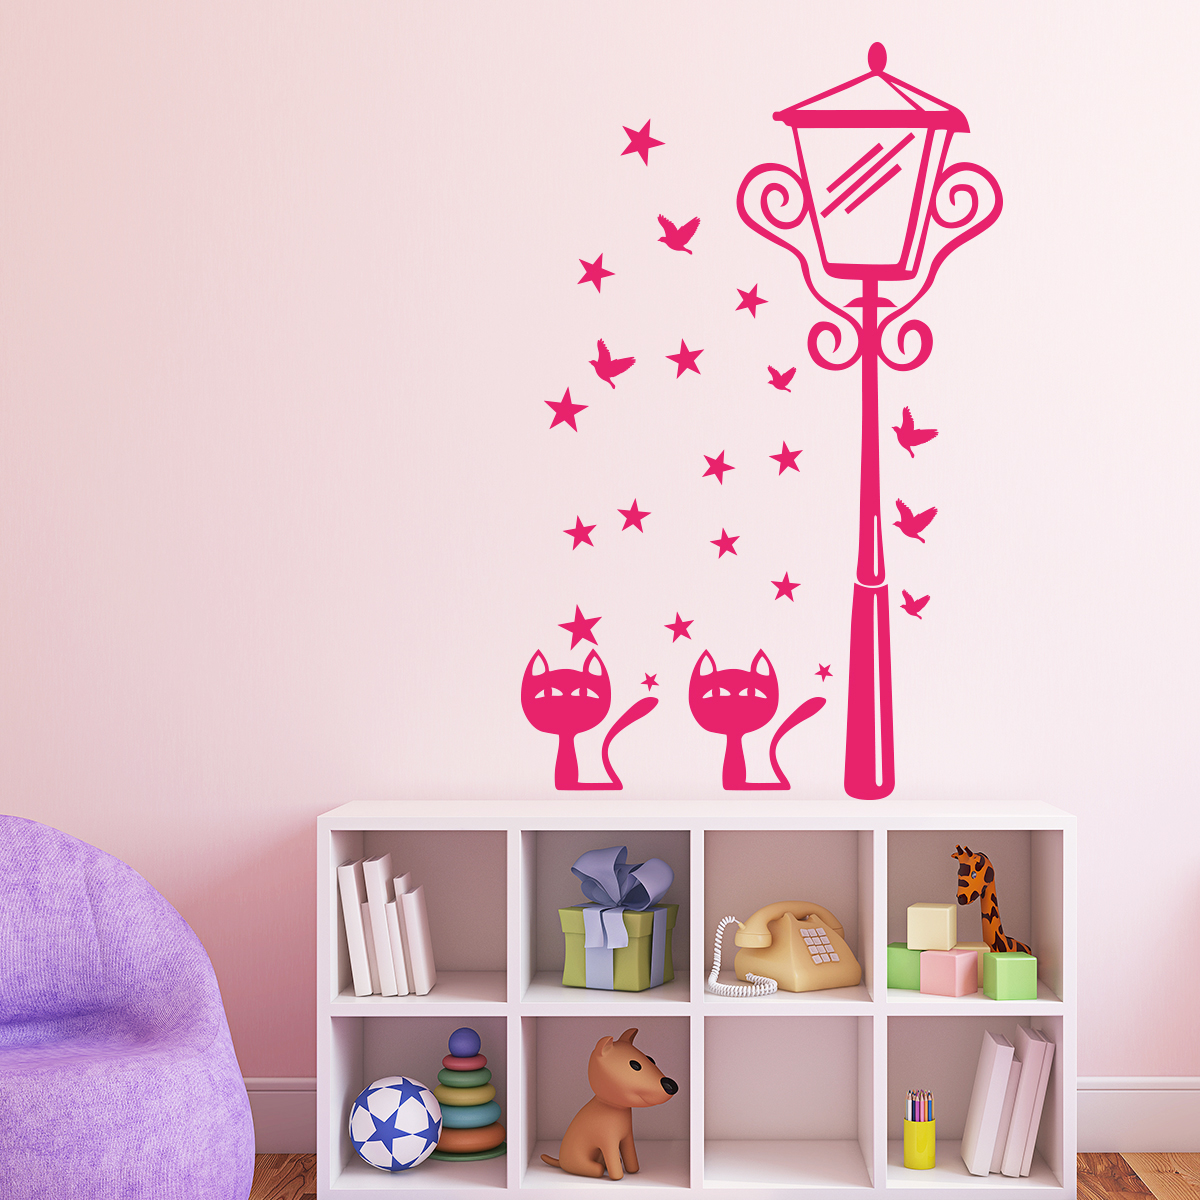 sticker chats toiles papillons et lampadaire stickers. Black Bedroom Furniture Sets. Home Design Ideas